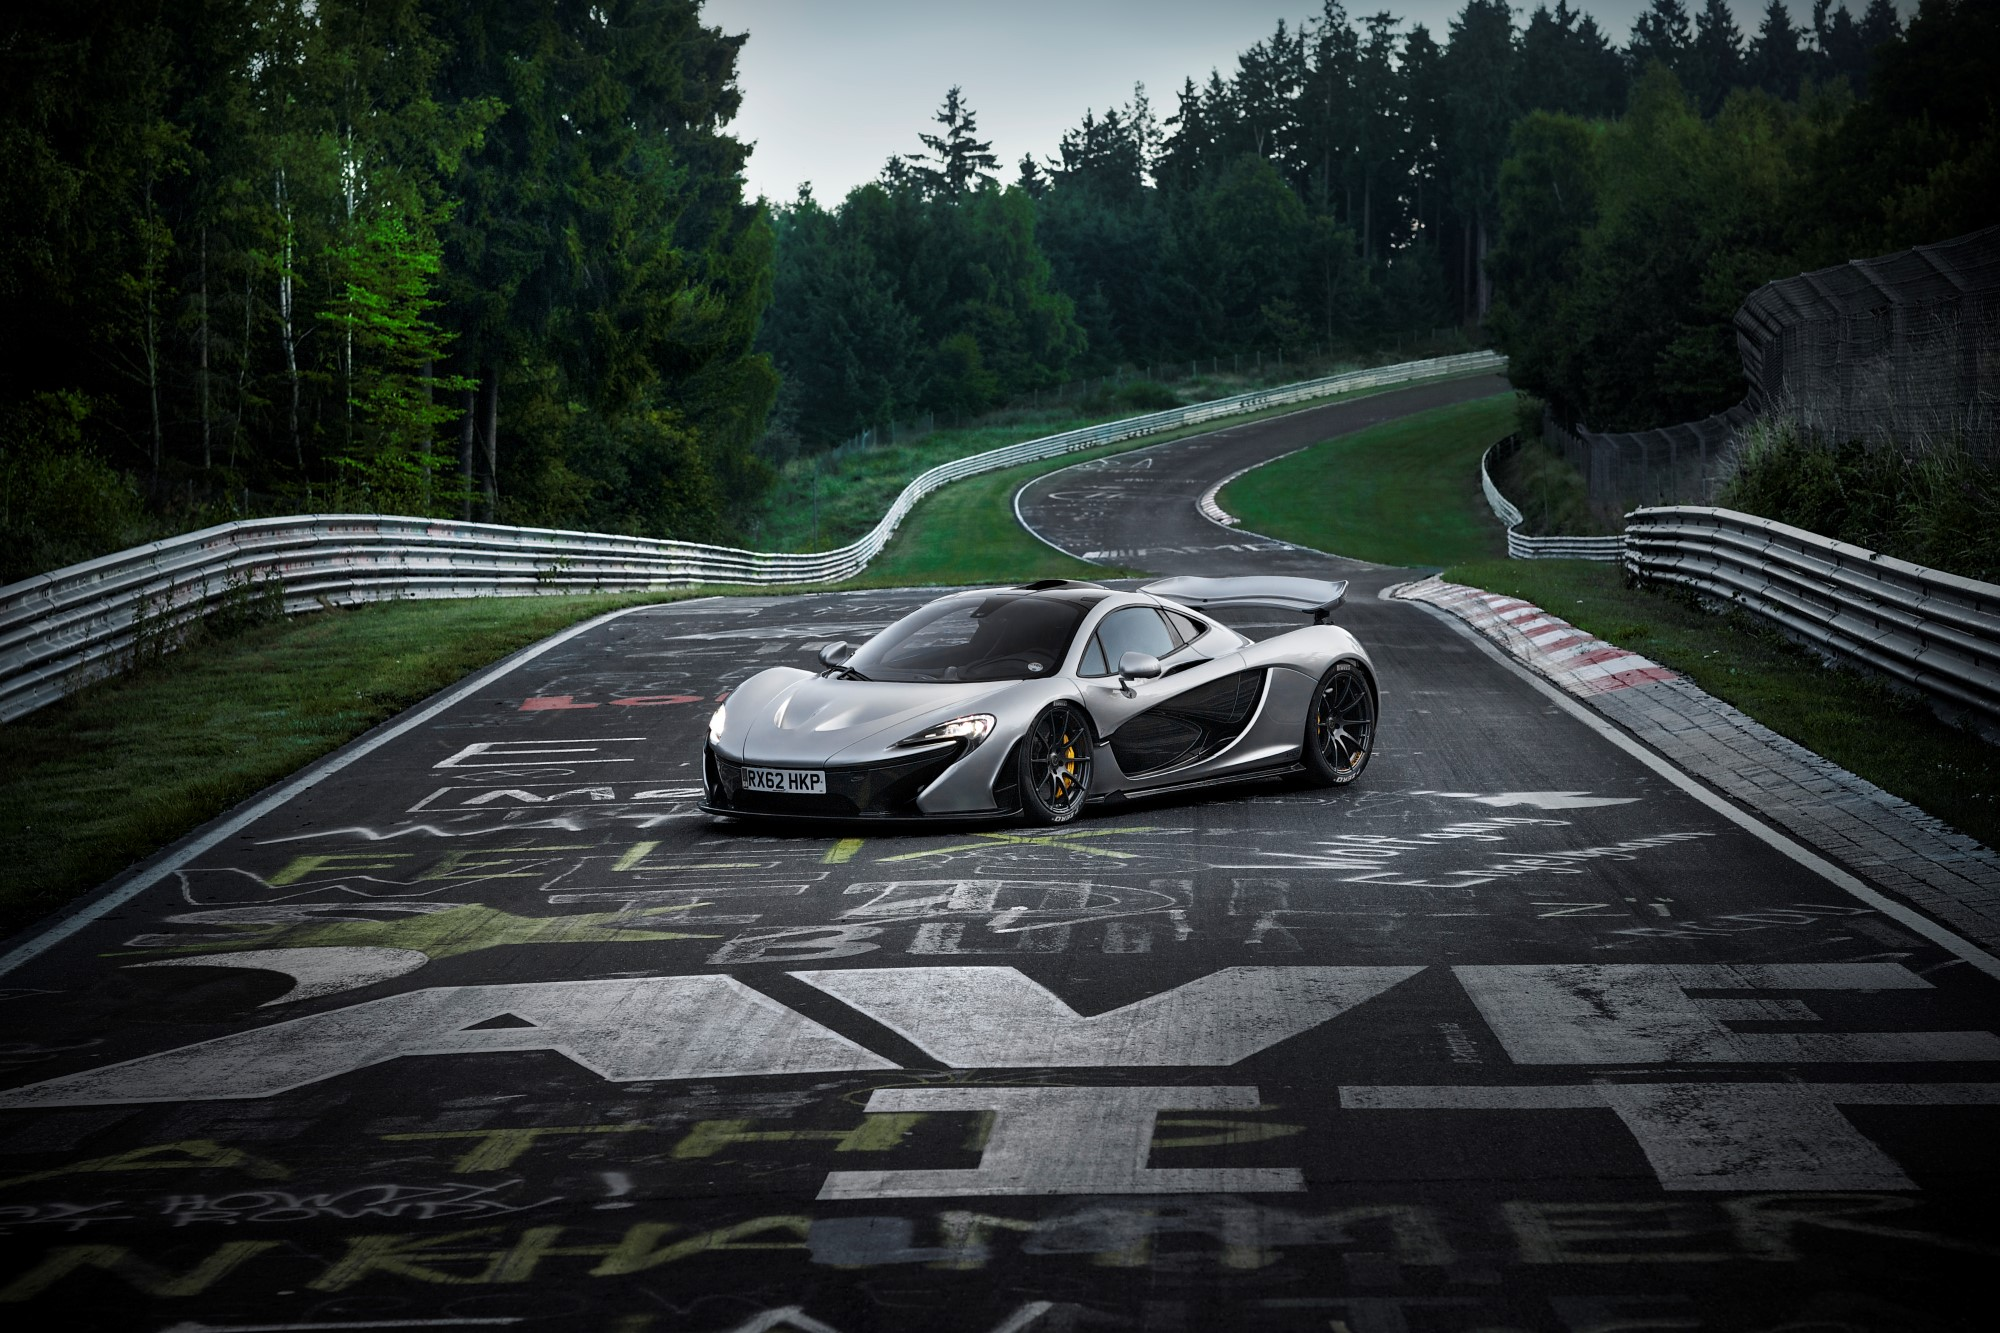 McLaren P1 takes on the Nürburgring-Nordschleife, goes sub-7.0 minutes